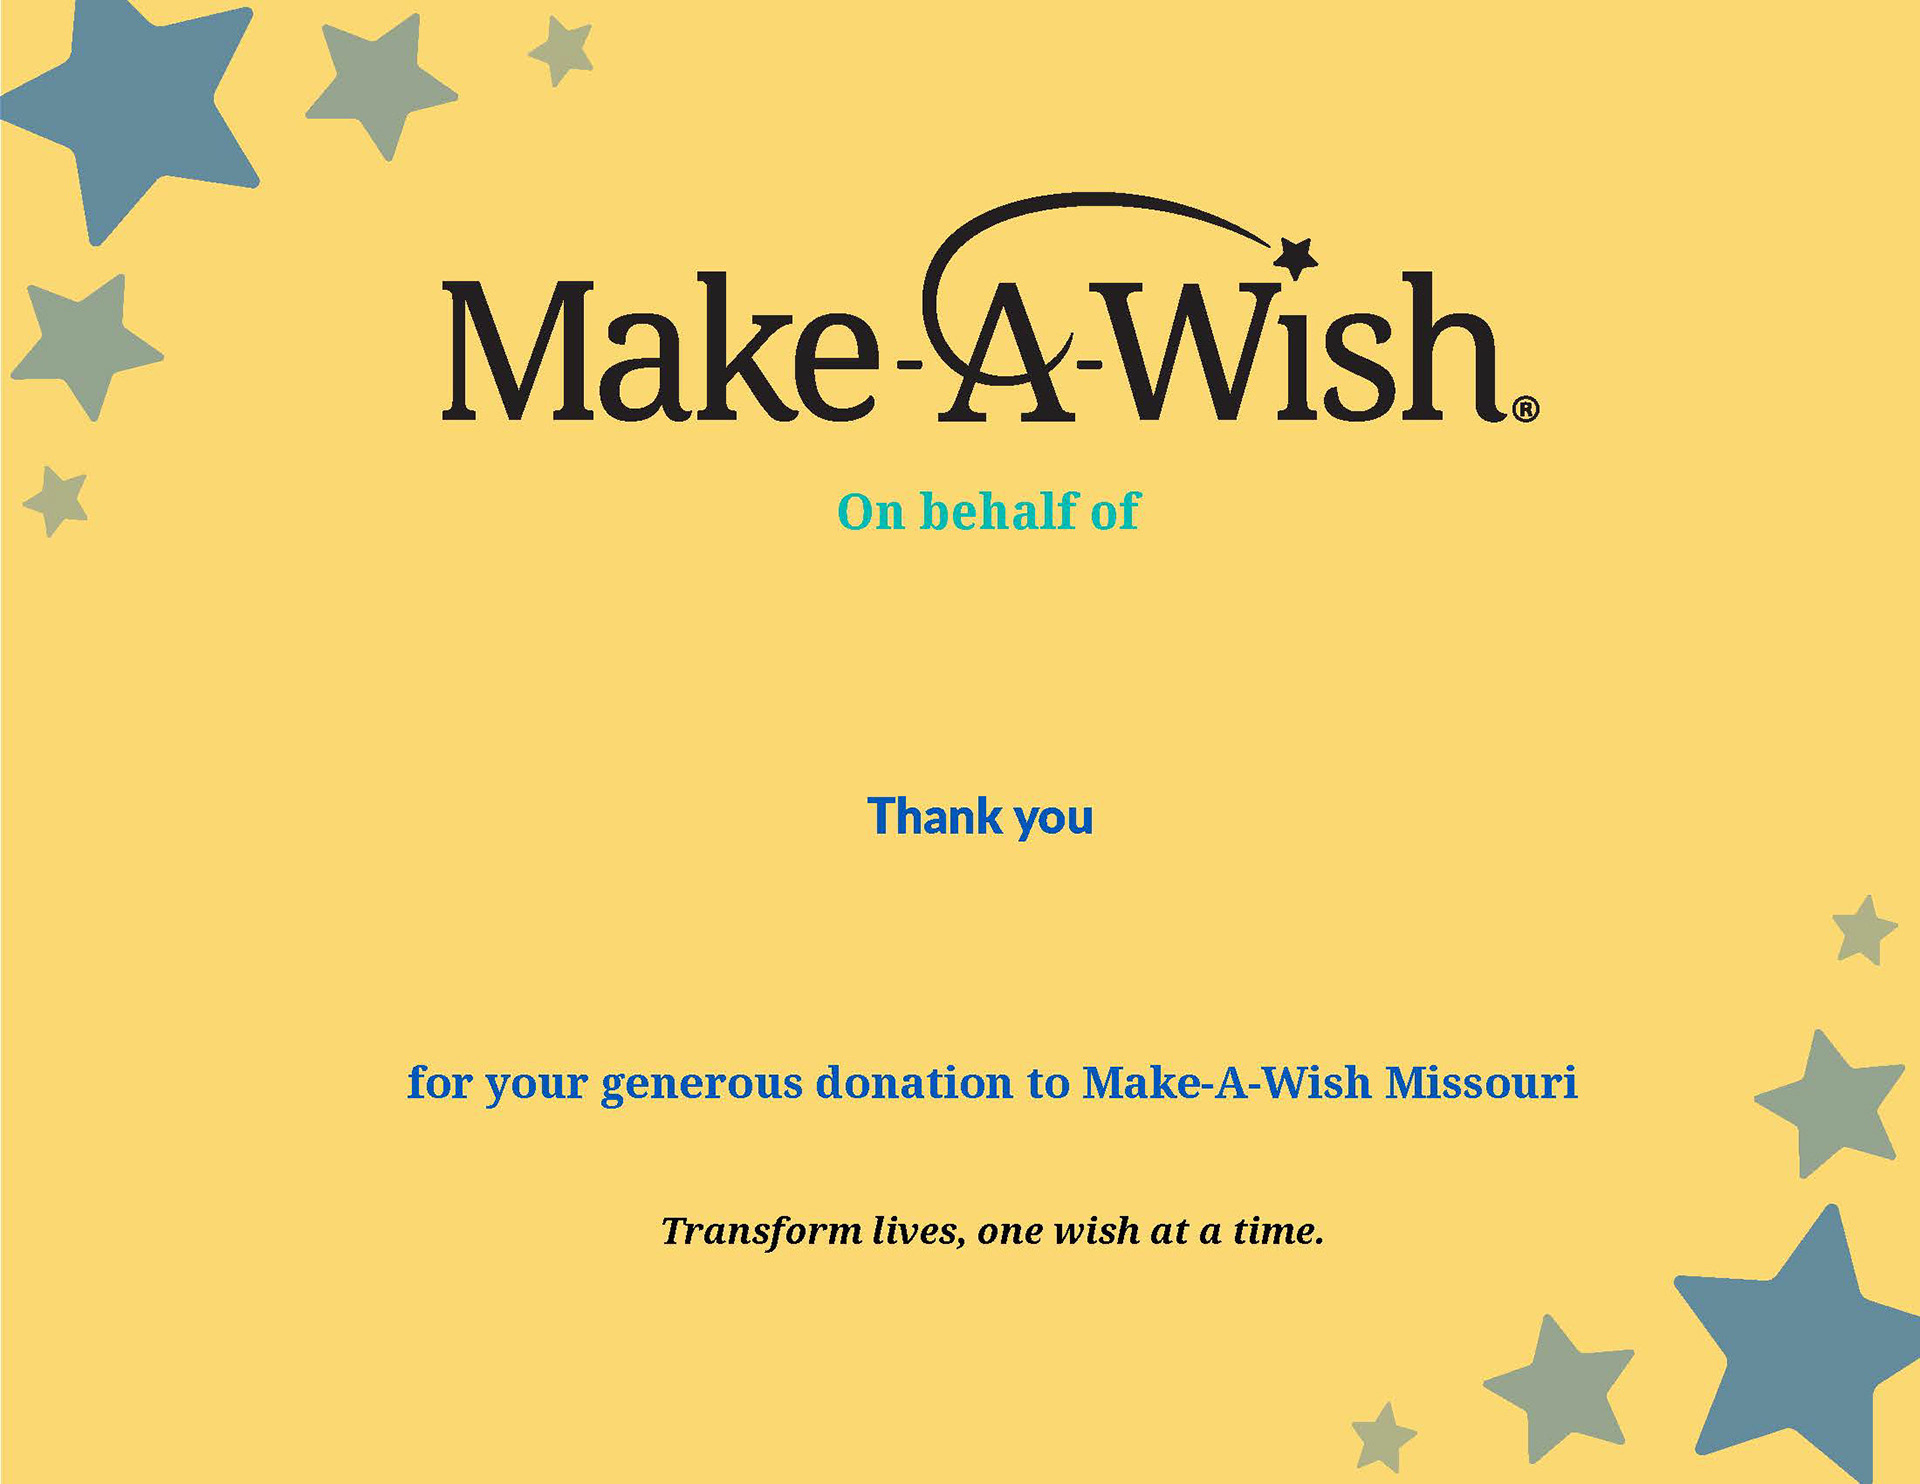 Jazmine poblette make a wish thank you certificate templates another design template that i created for make a wish are these thank you templates these certificates are given to wish kids when they find out their maxwellsz